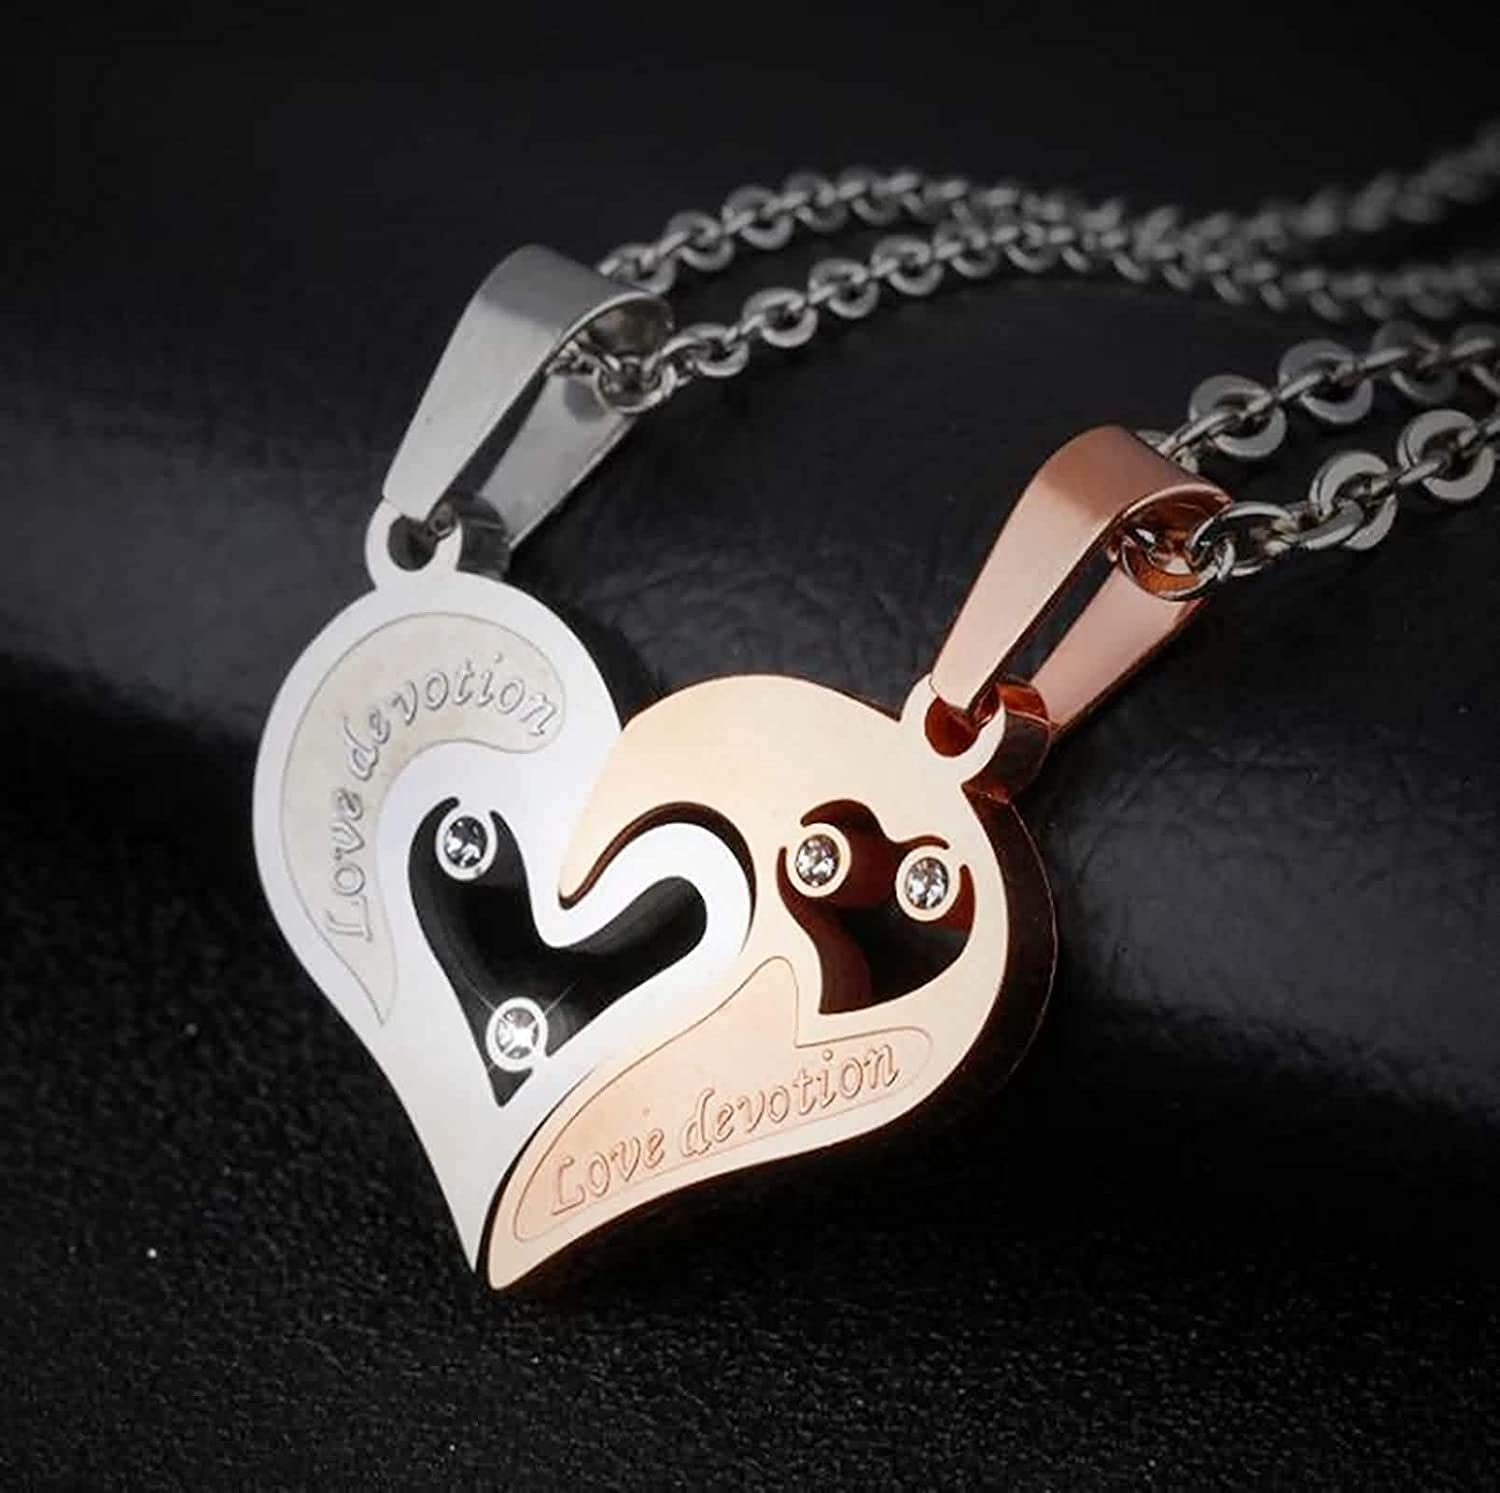 LOPEZ KENT Jewelry Men Women Stainless Steel Pendant Necklace Cubic Zirconia Hollow Heart Puzzle Gold White